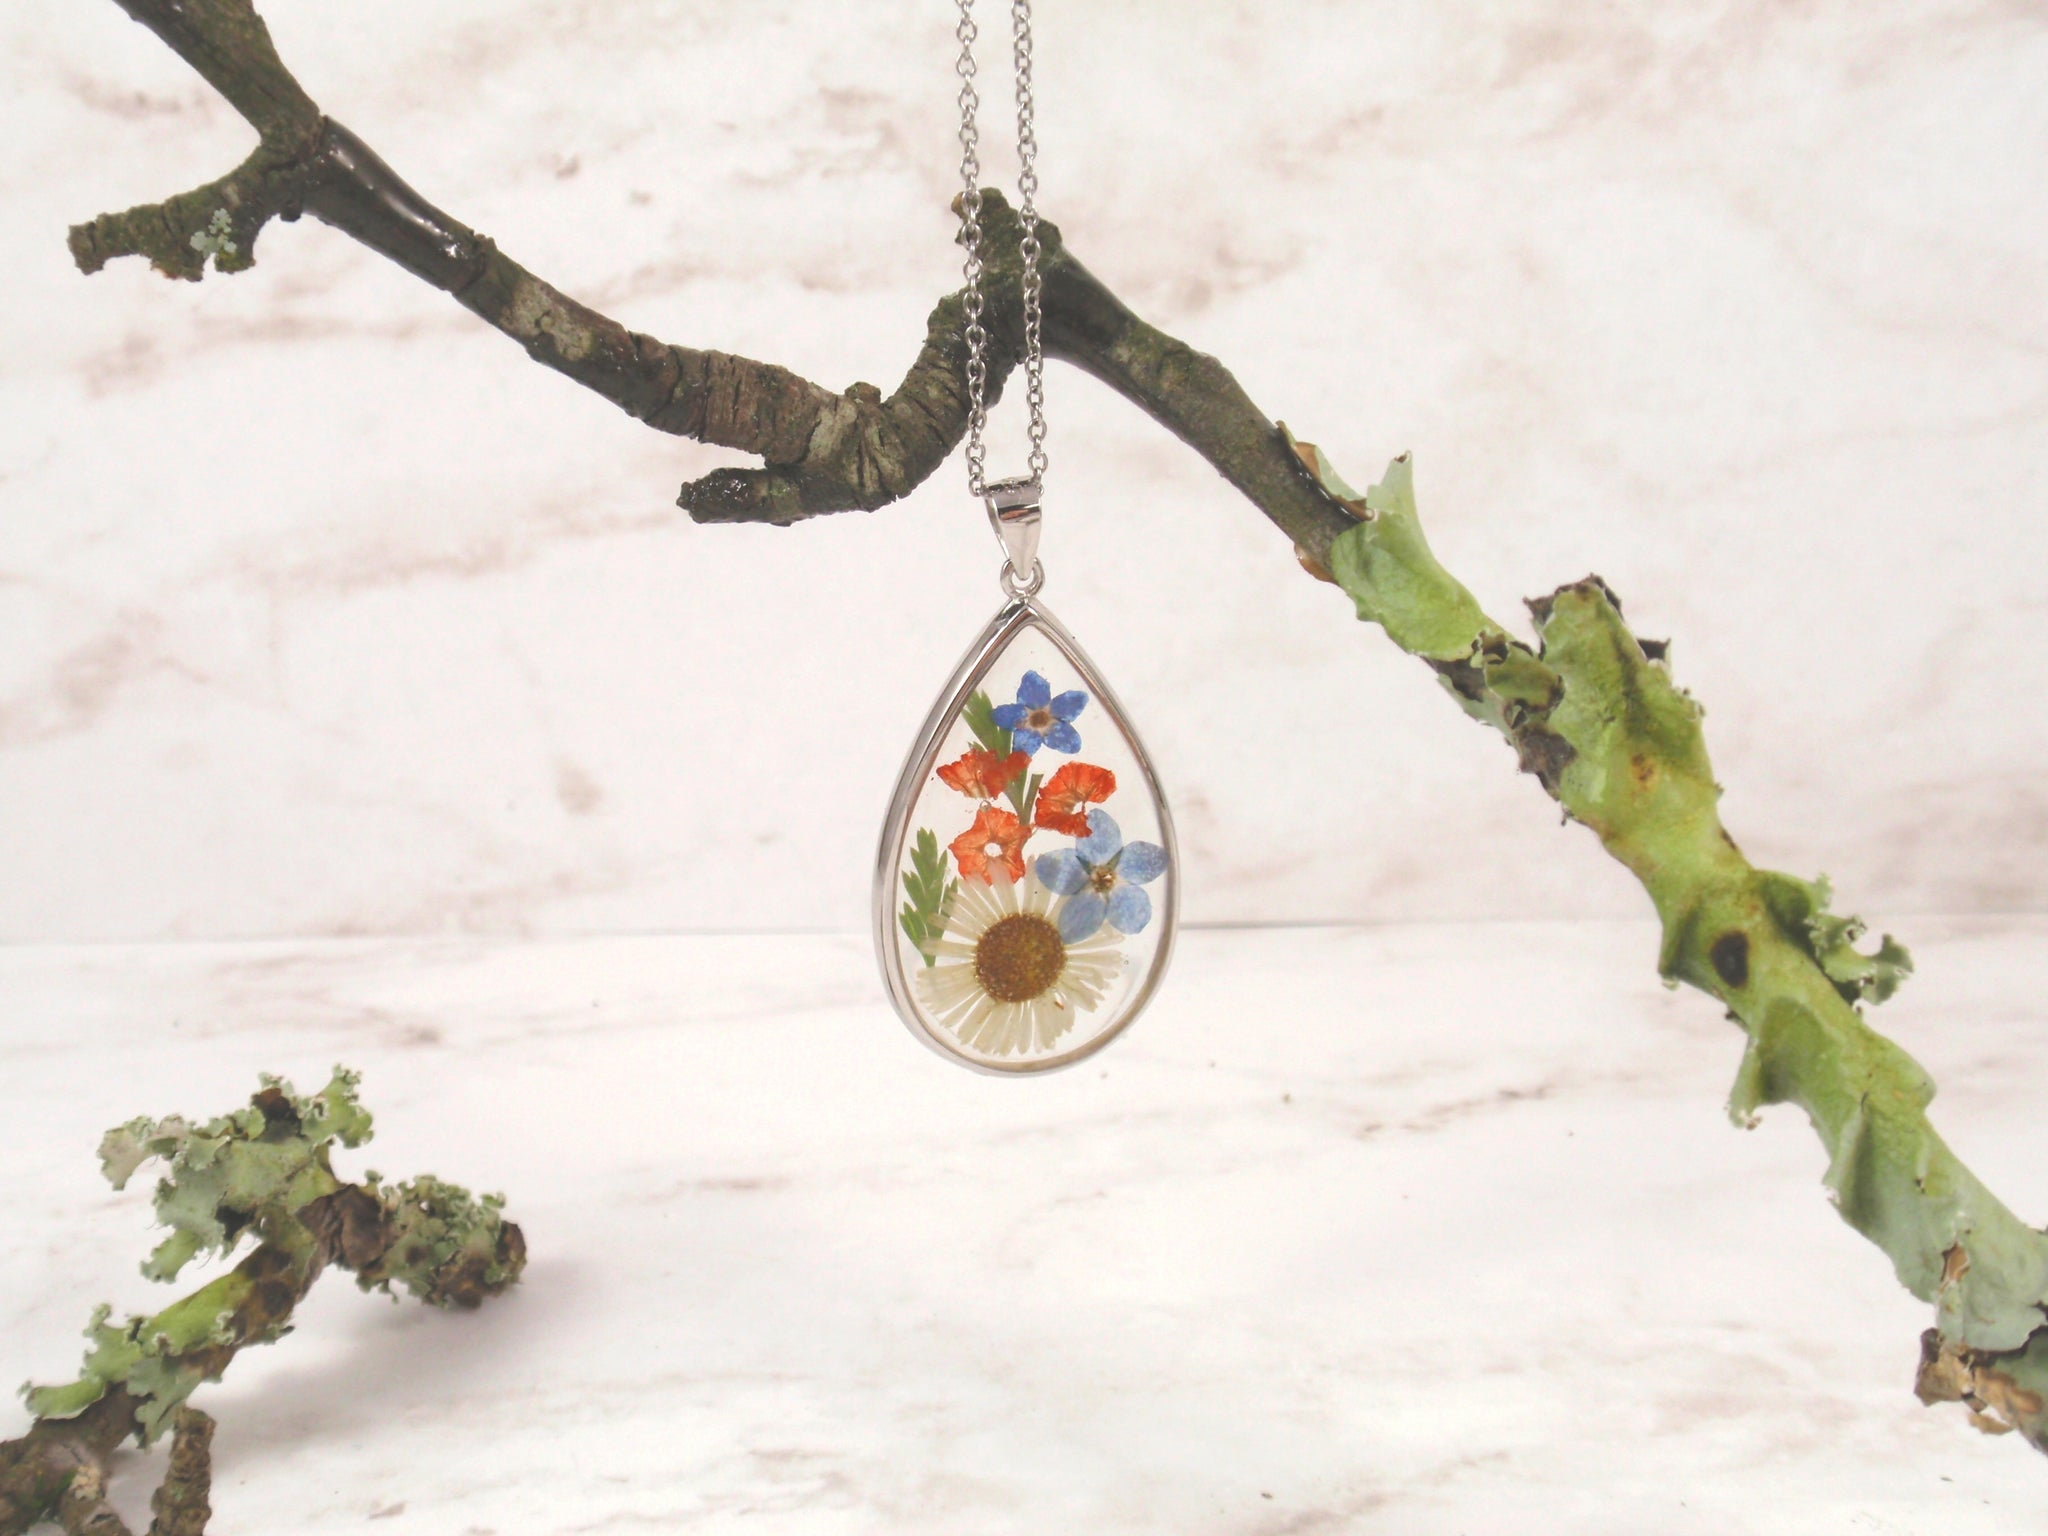 Pressed flowers necklace teardrop pendant